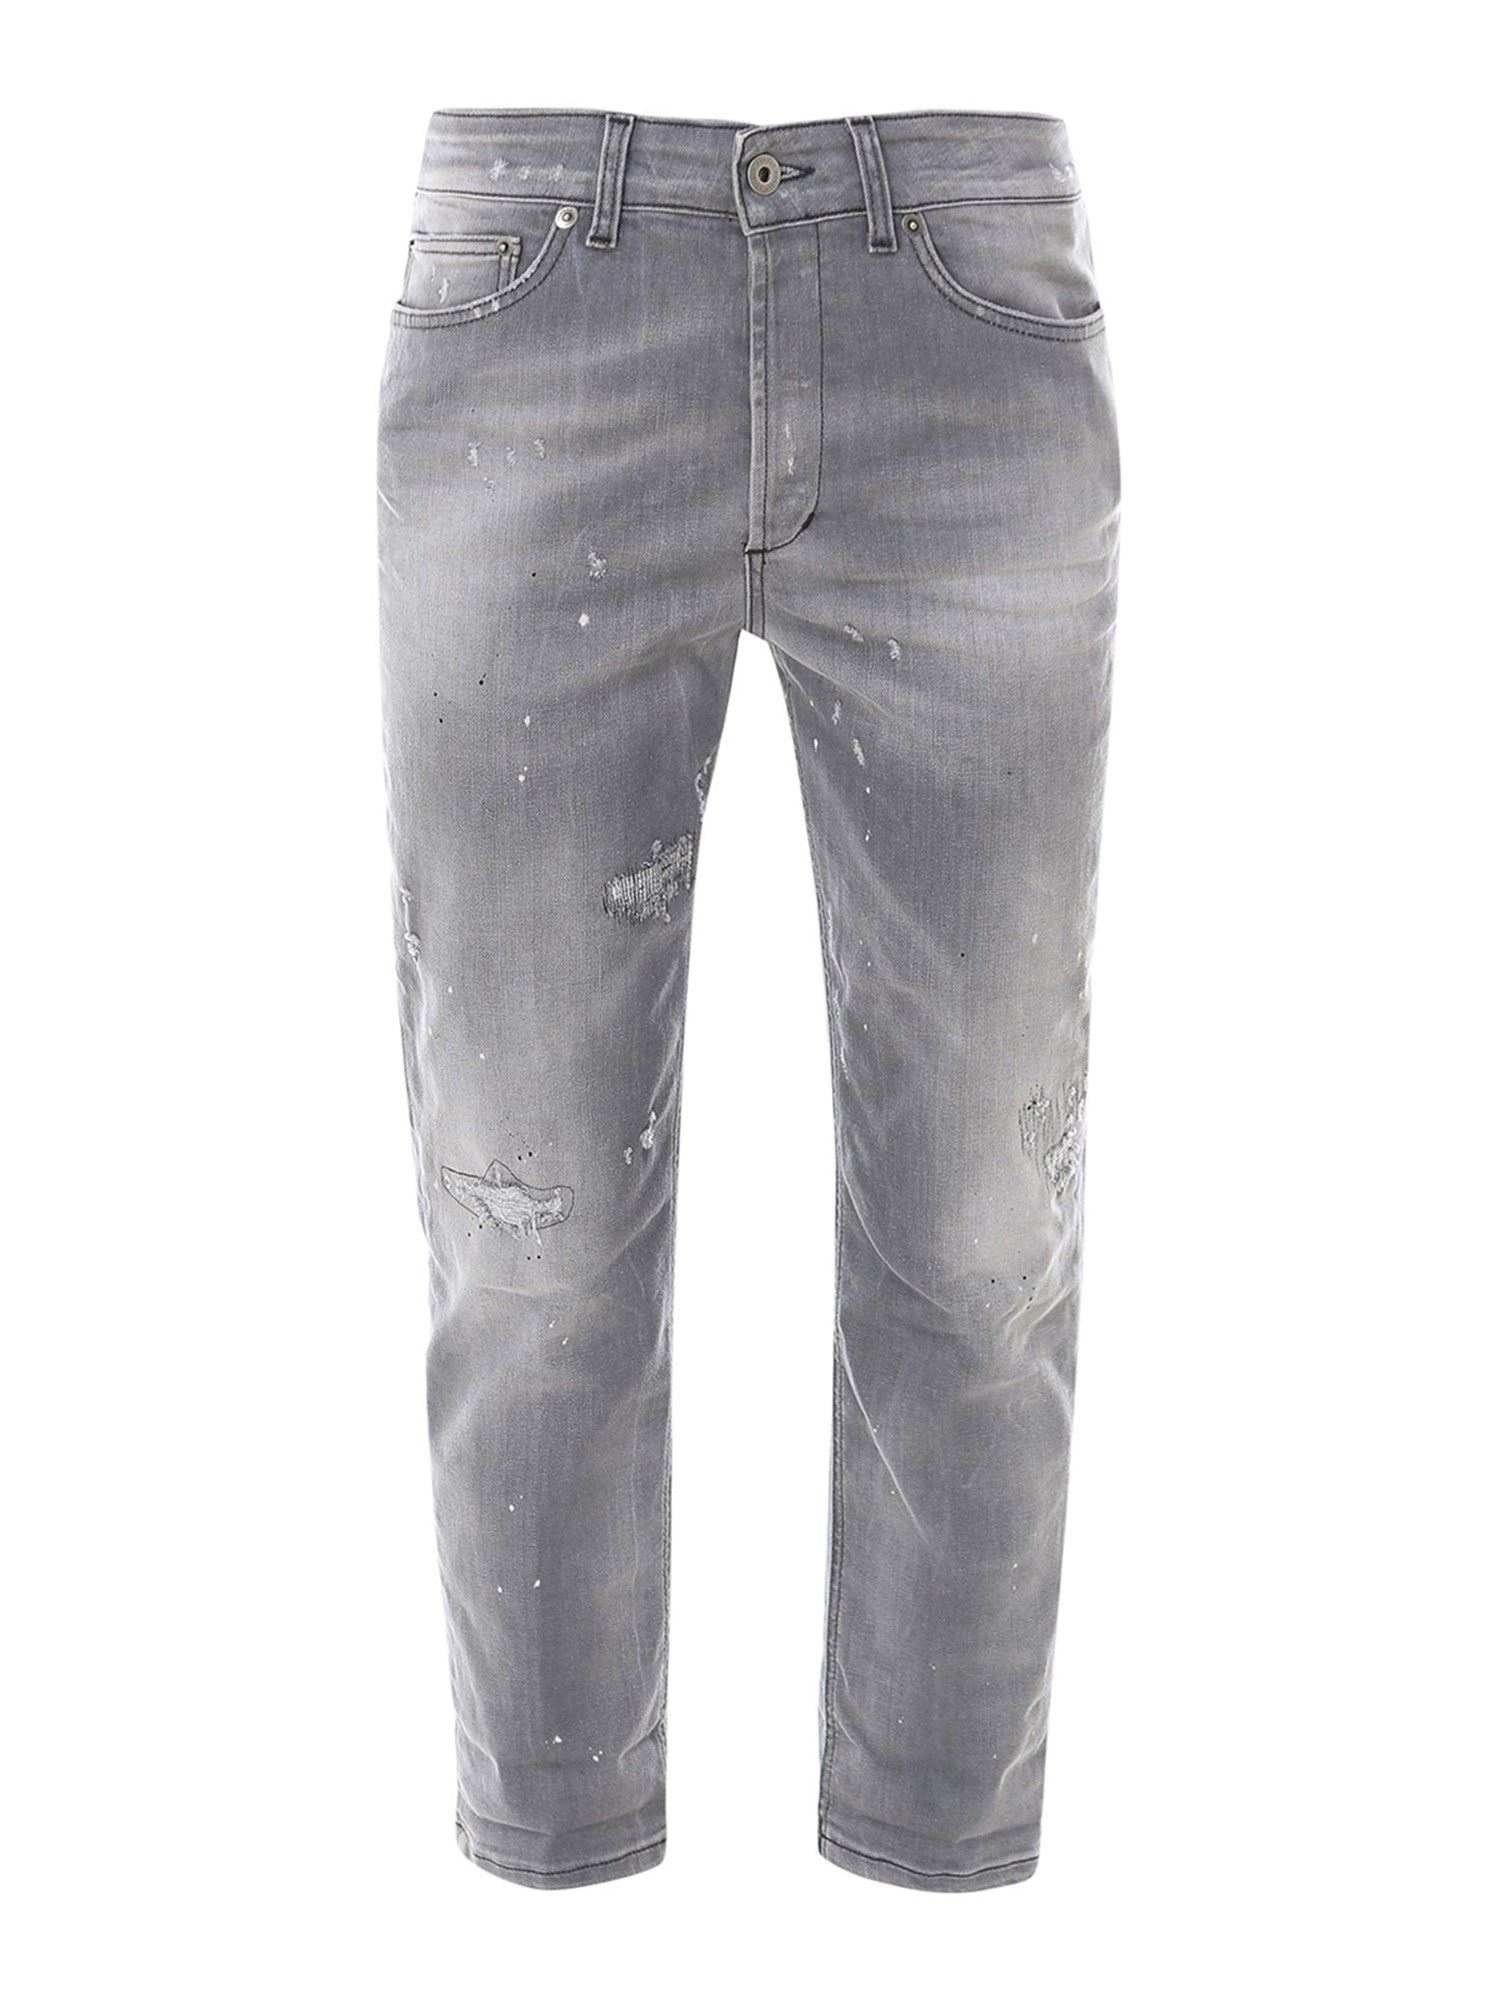 Dondup RECYCLED COTTON BLEND BOYFRIEND JEANS IN GREY